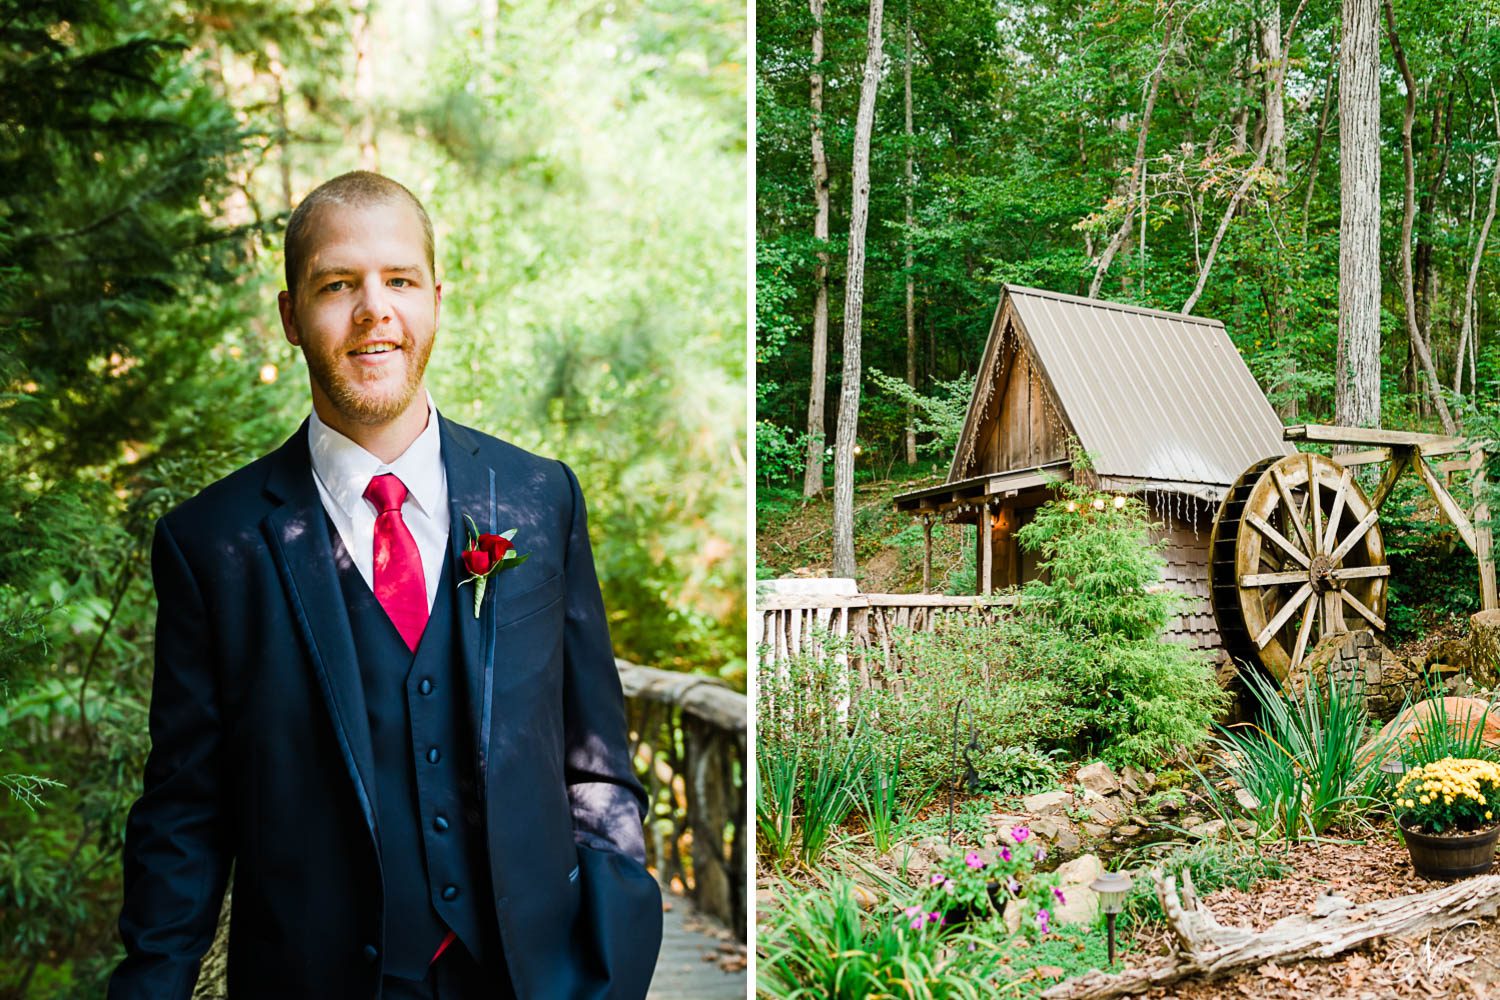 groom with red necktie and red rose boutonniere. And The water wheel at Indigo falls events in Dallas GA